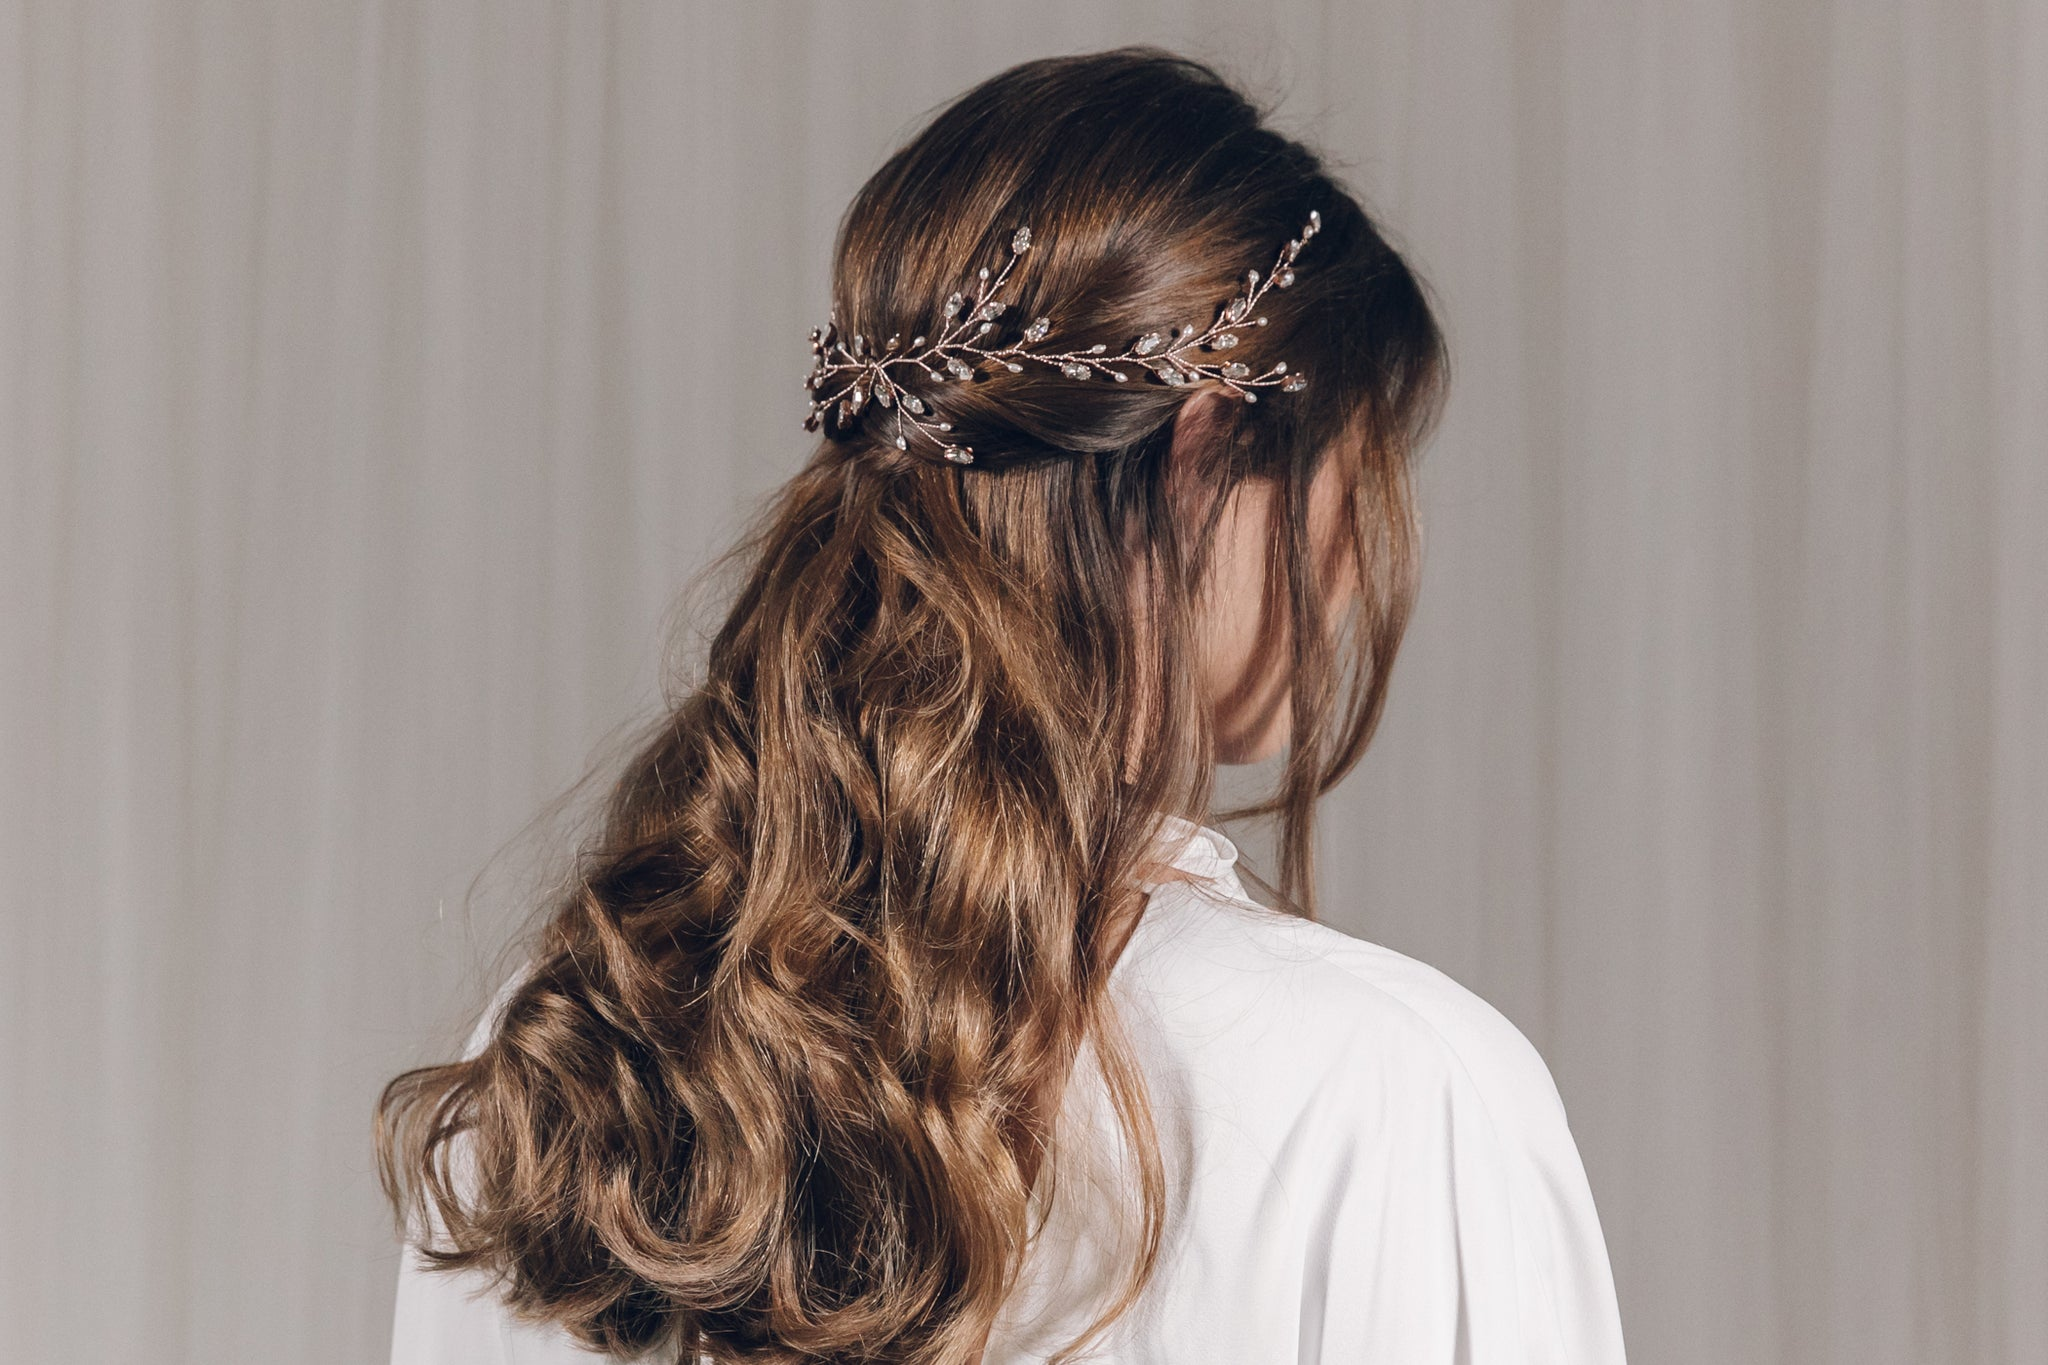 Rose Gold Hair Accessories for Weddings Lily Swarovski crystal hair vine